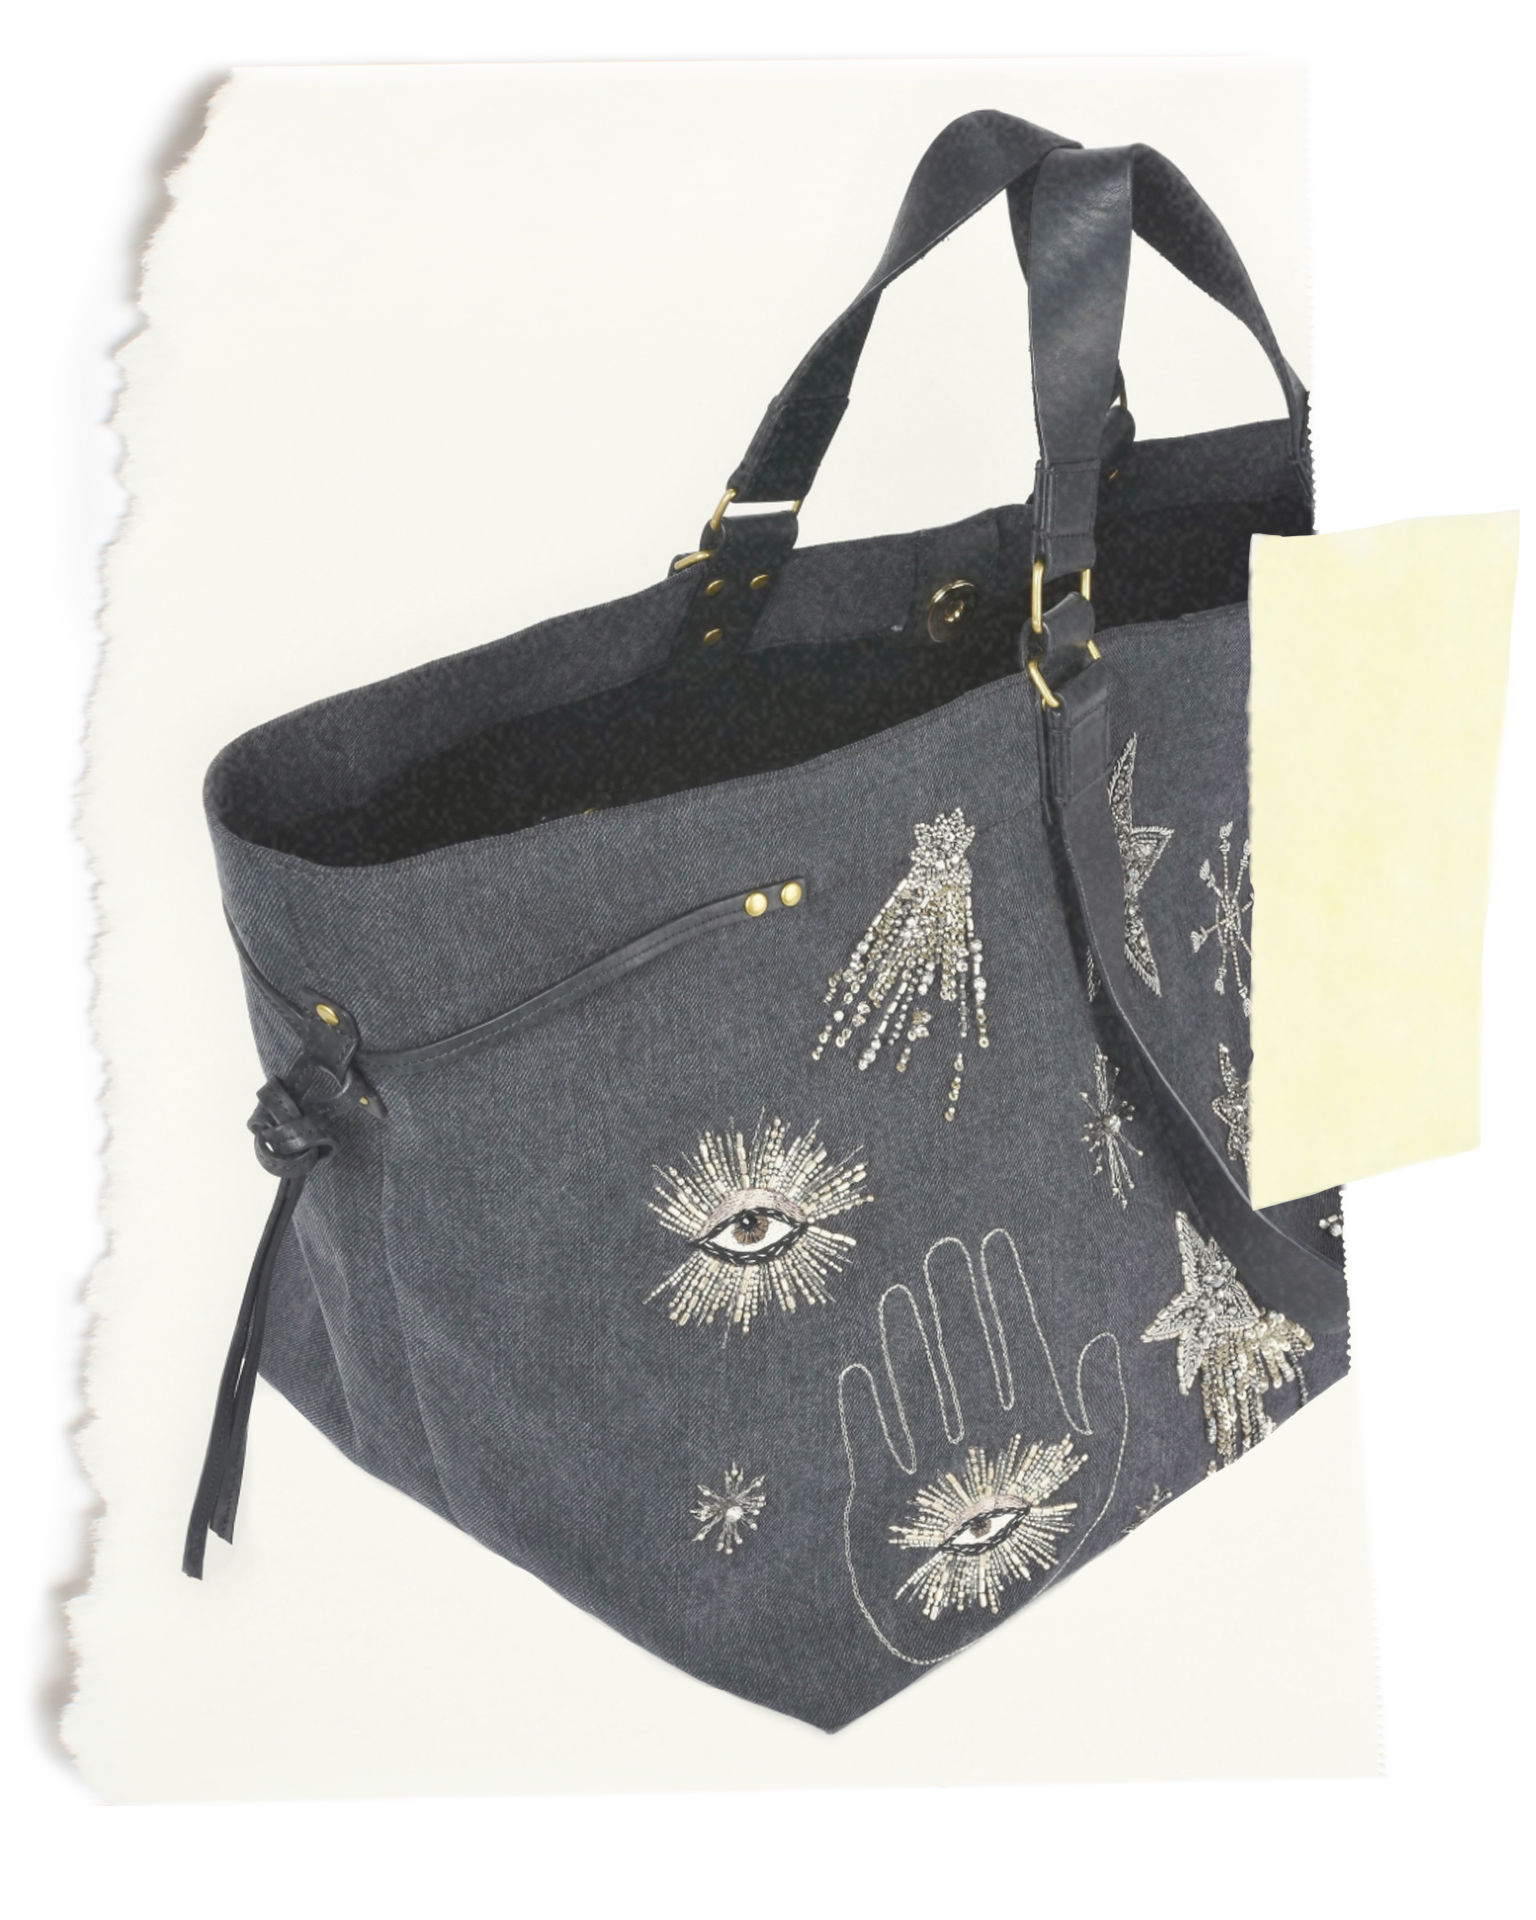 WARDY embroidered cotton and leather shopper bag